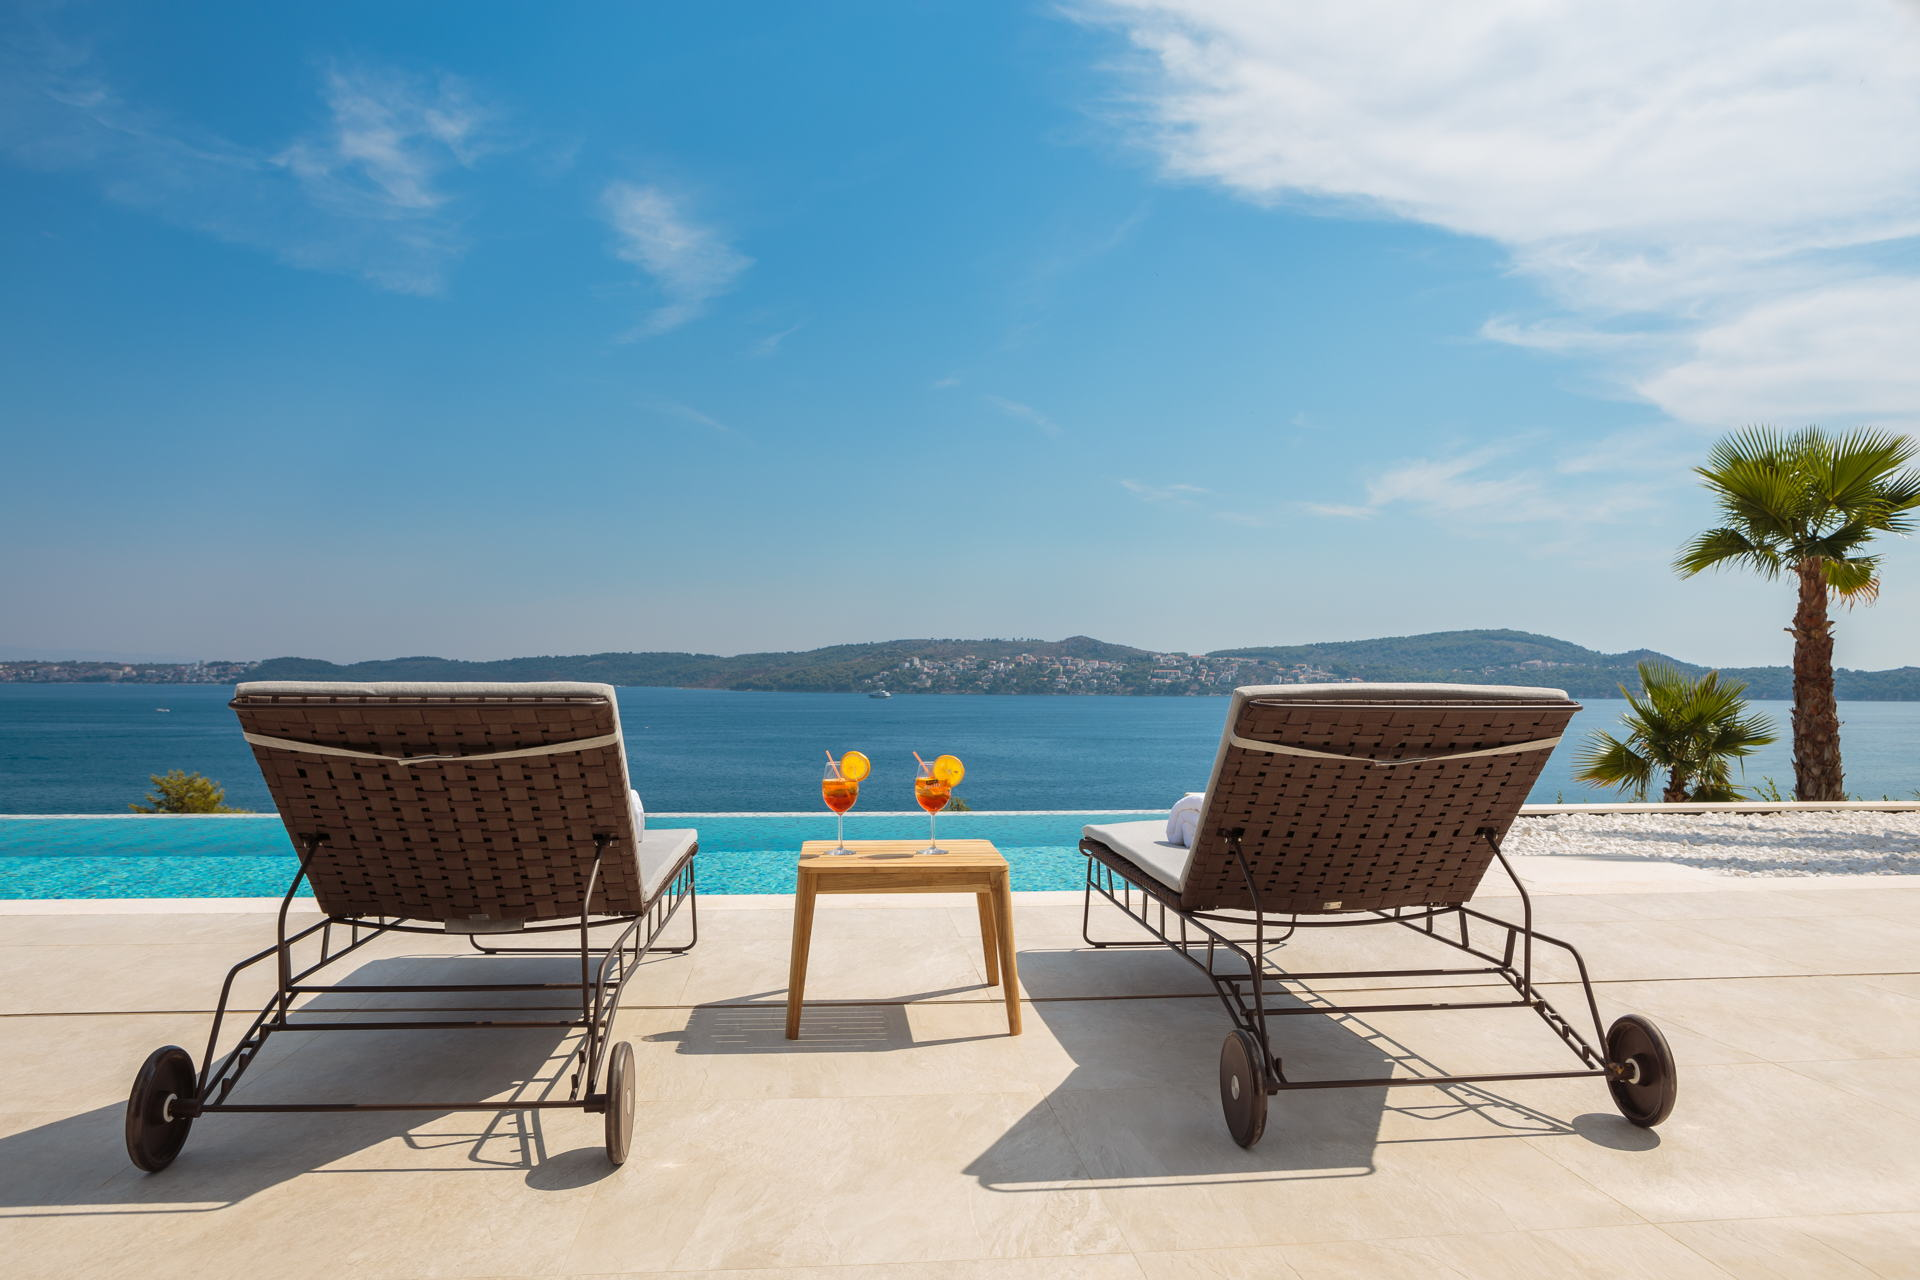 Benefit from the Early Bird Offer of Luxury Villas in Croatia